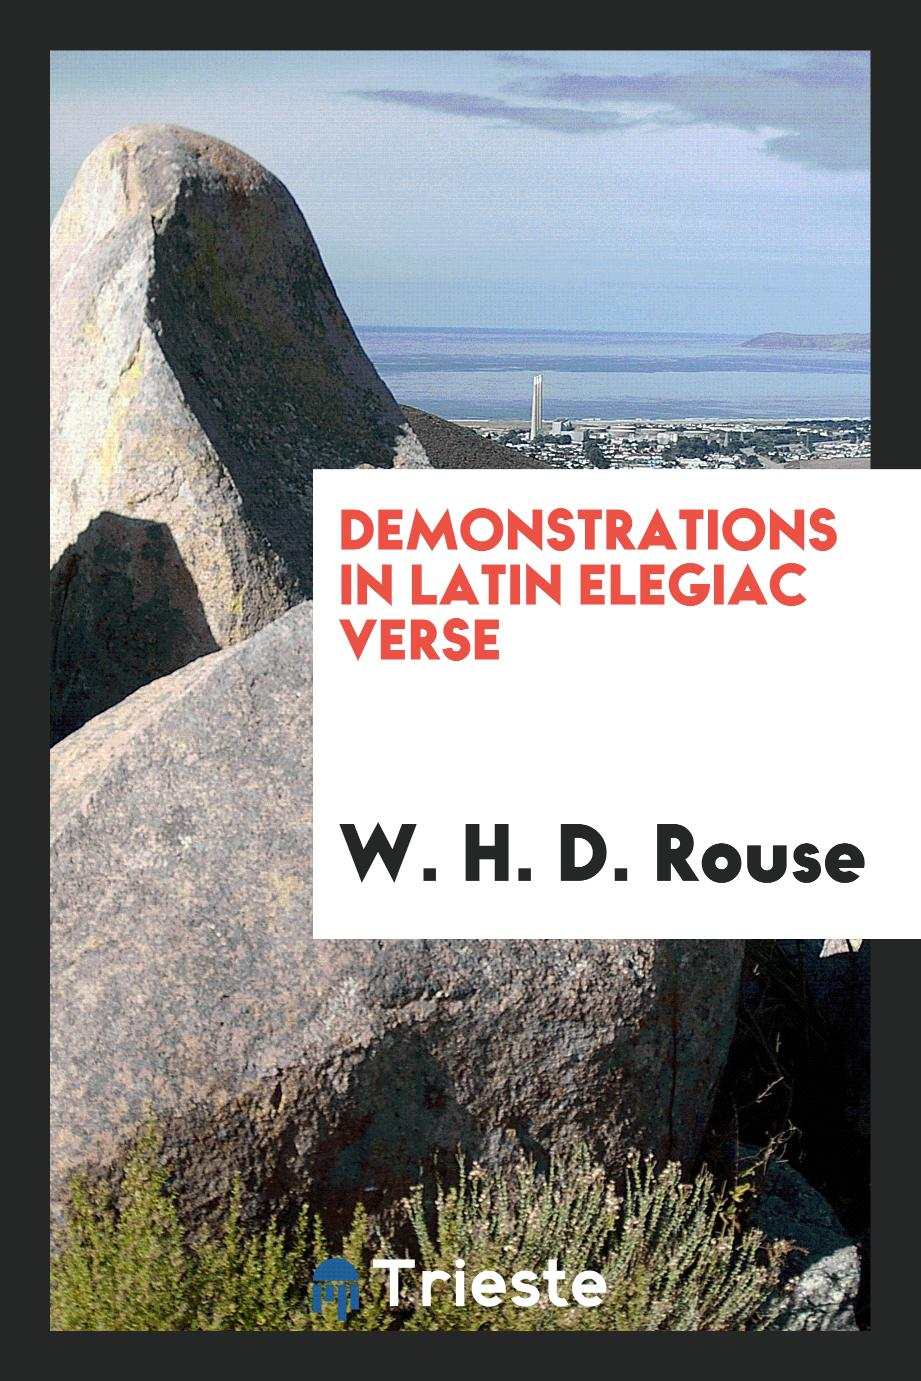 W. H. D. Rouse - Demonstrations in Latin Elegiac Verse